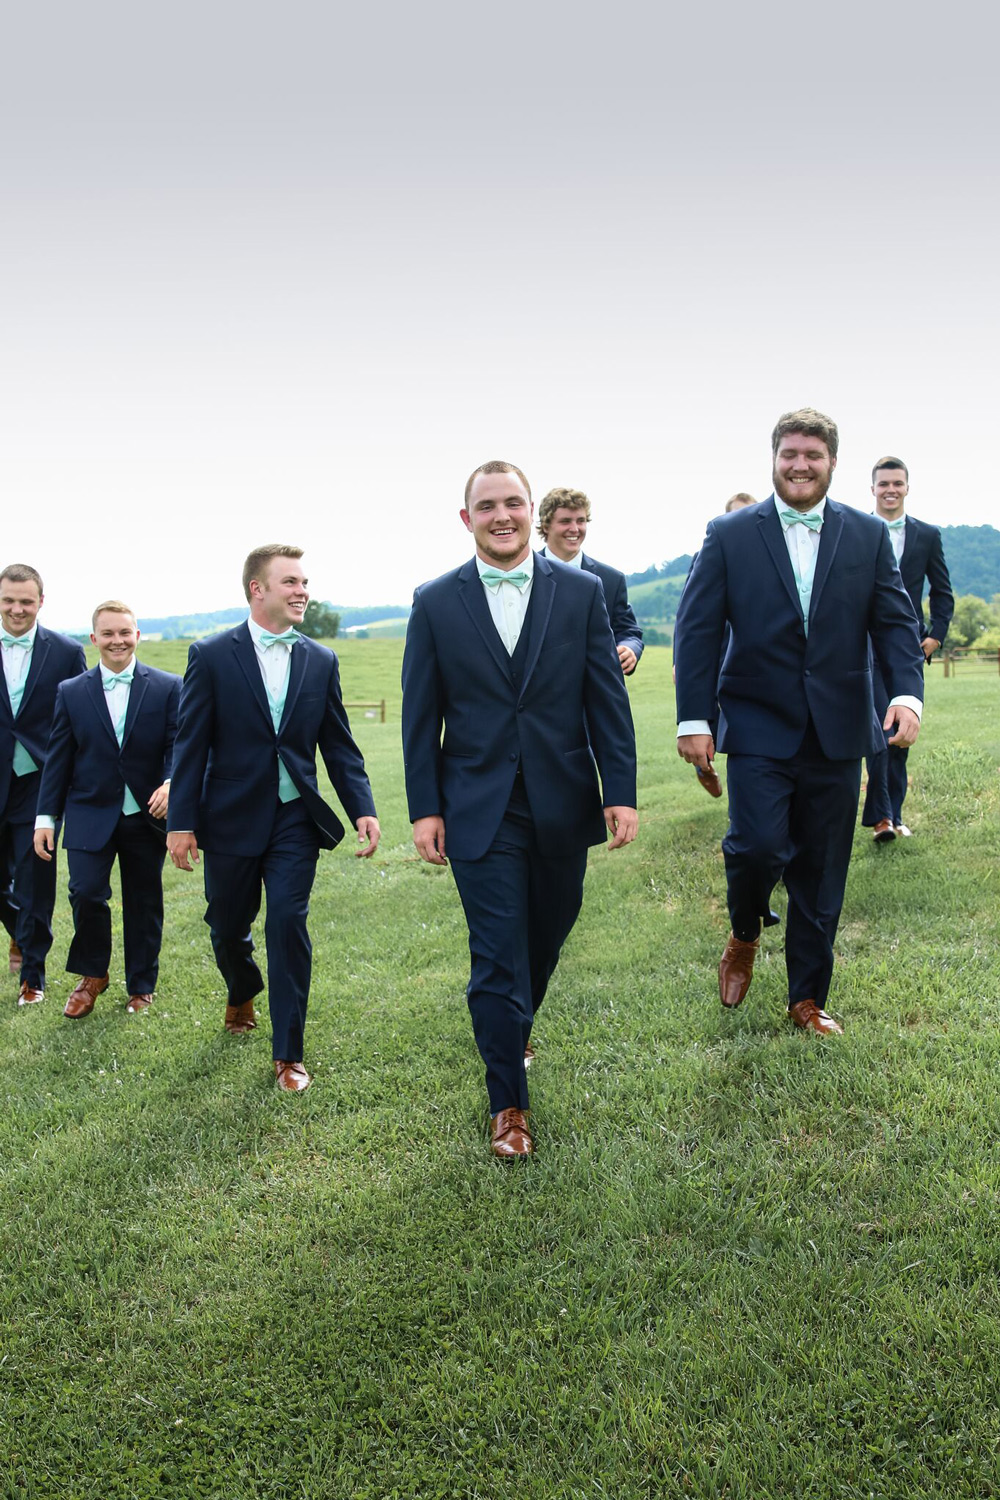 groomsmen_walking.jpg